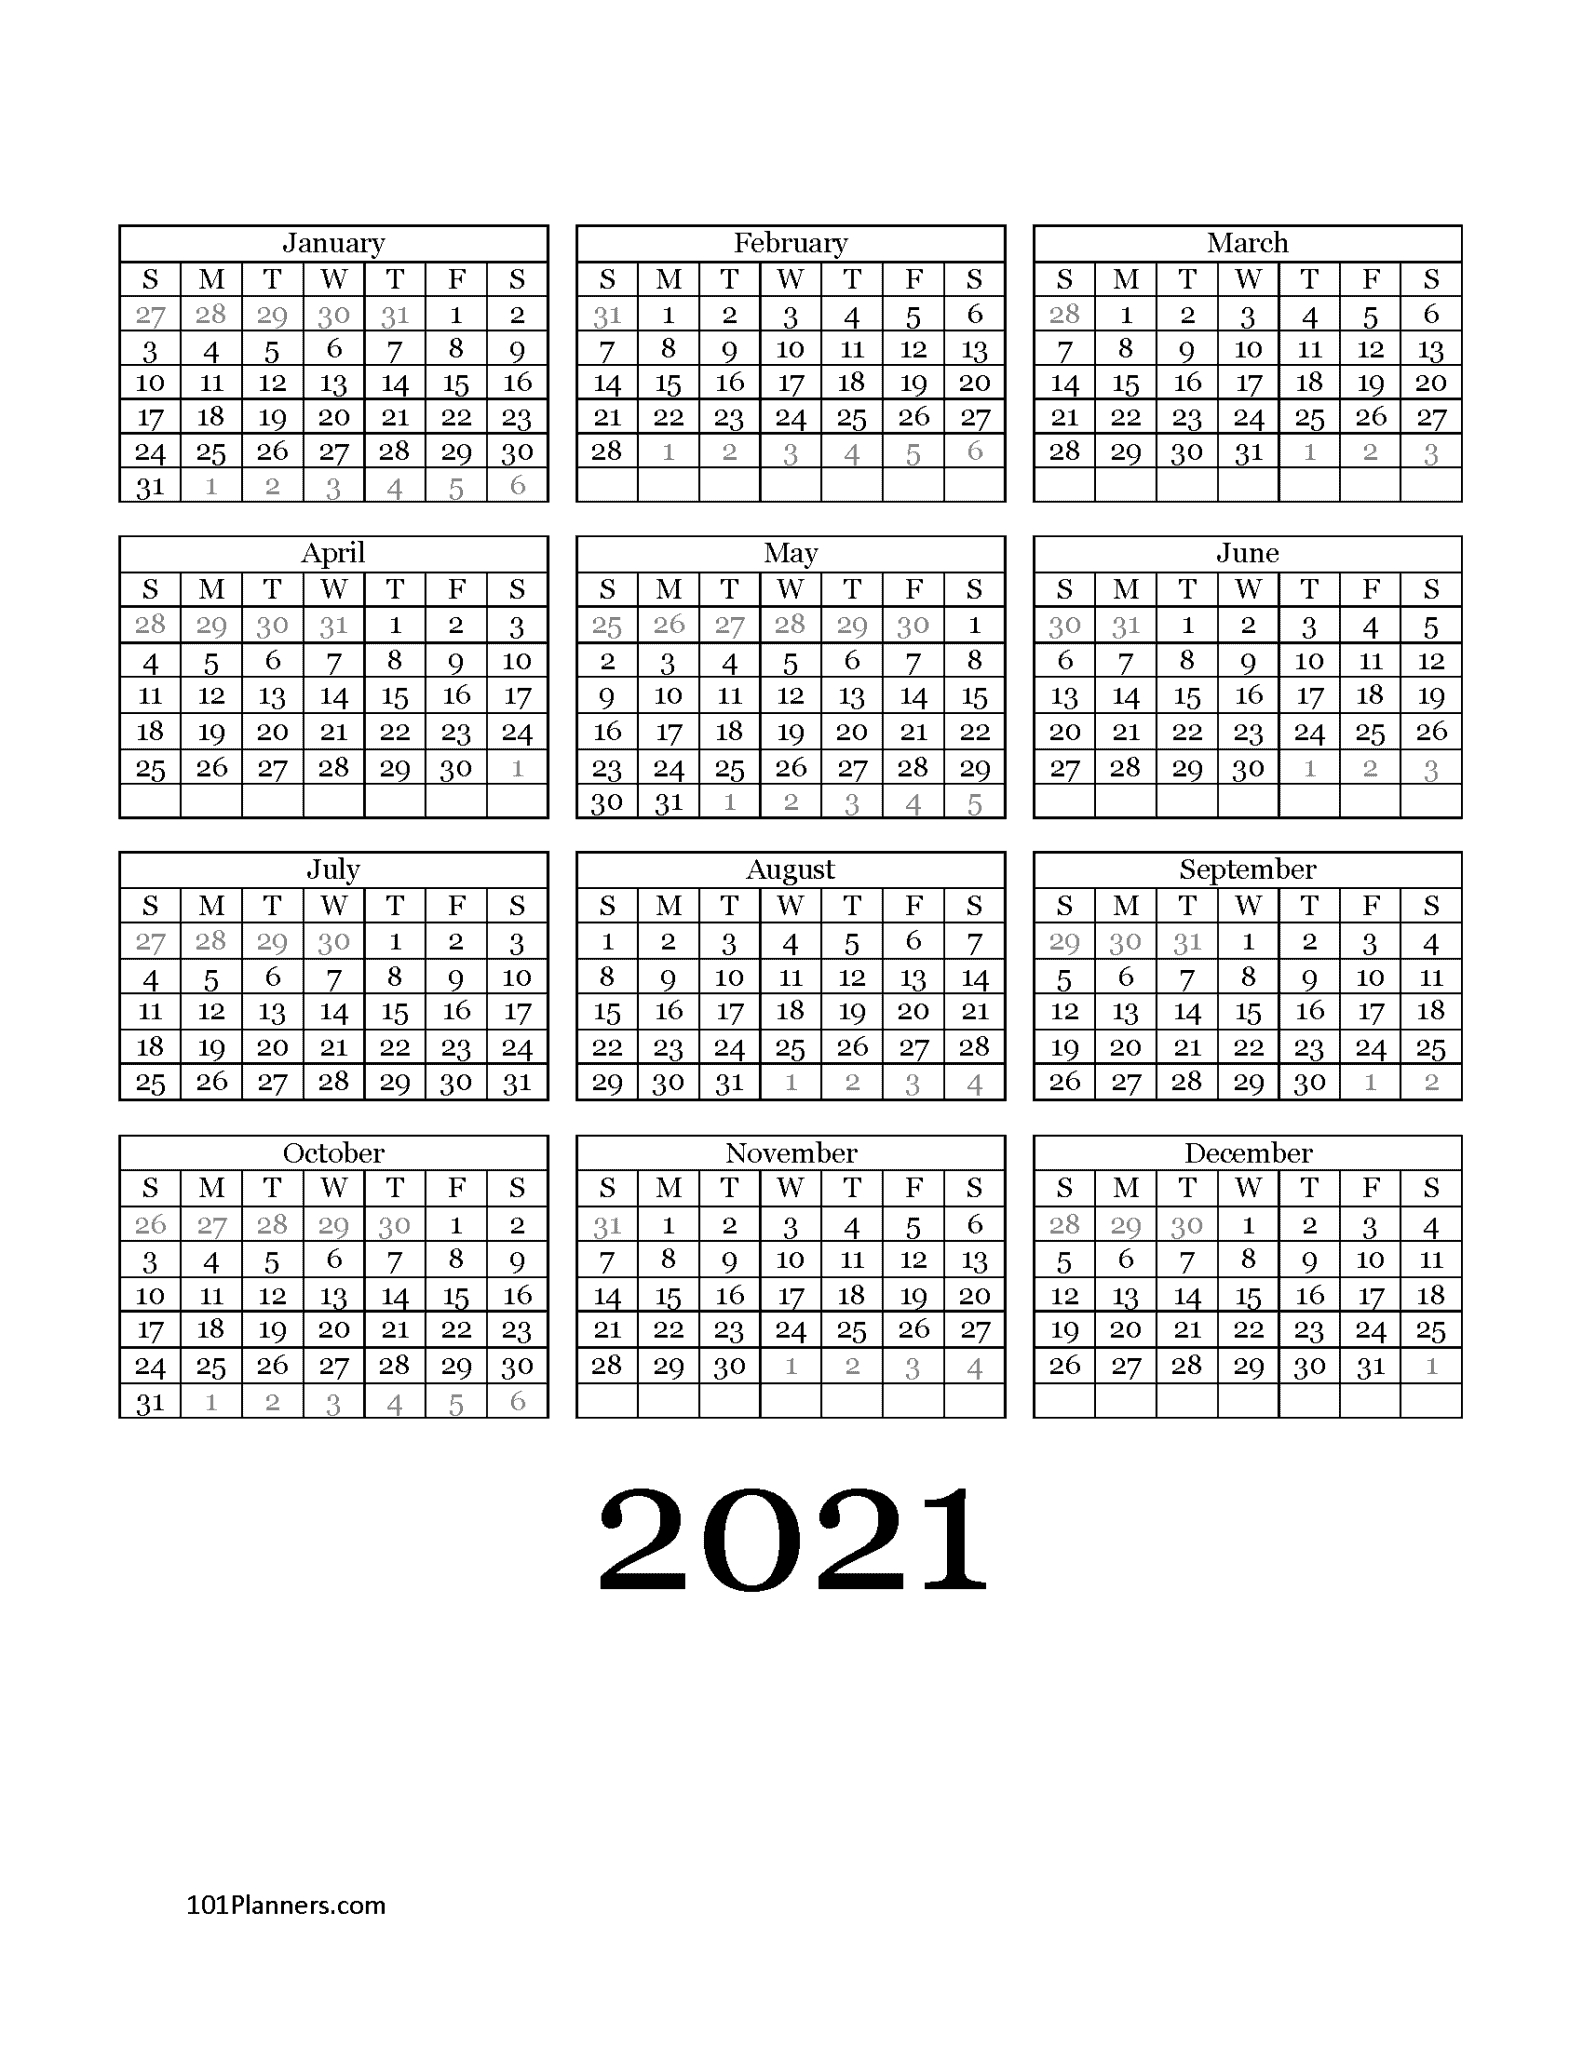 Free Printable 2021 Yearly Calendar At A Glance | 101